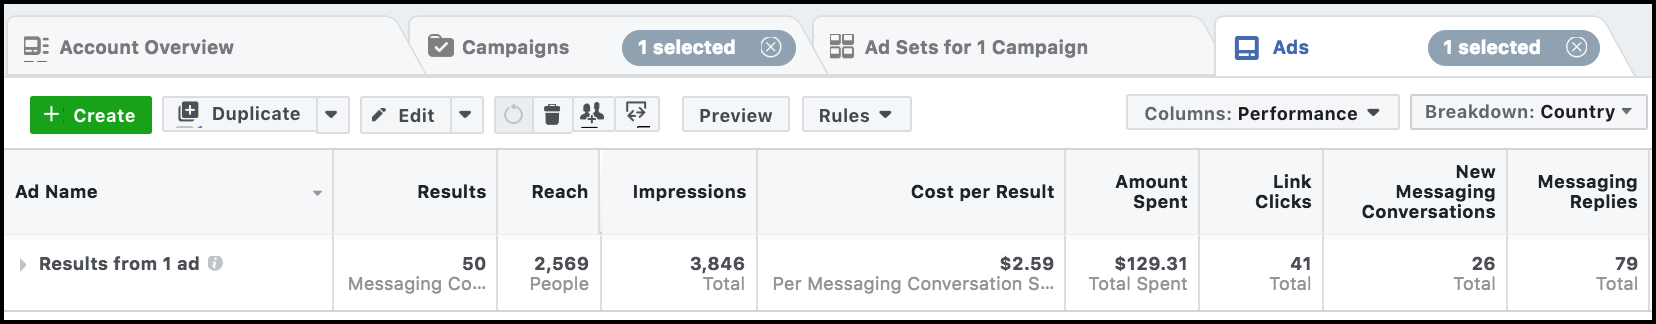 facebook messenger ad results